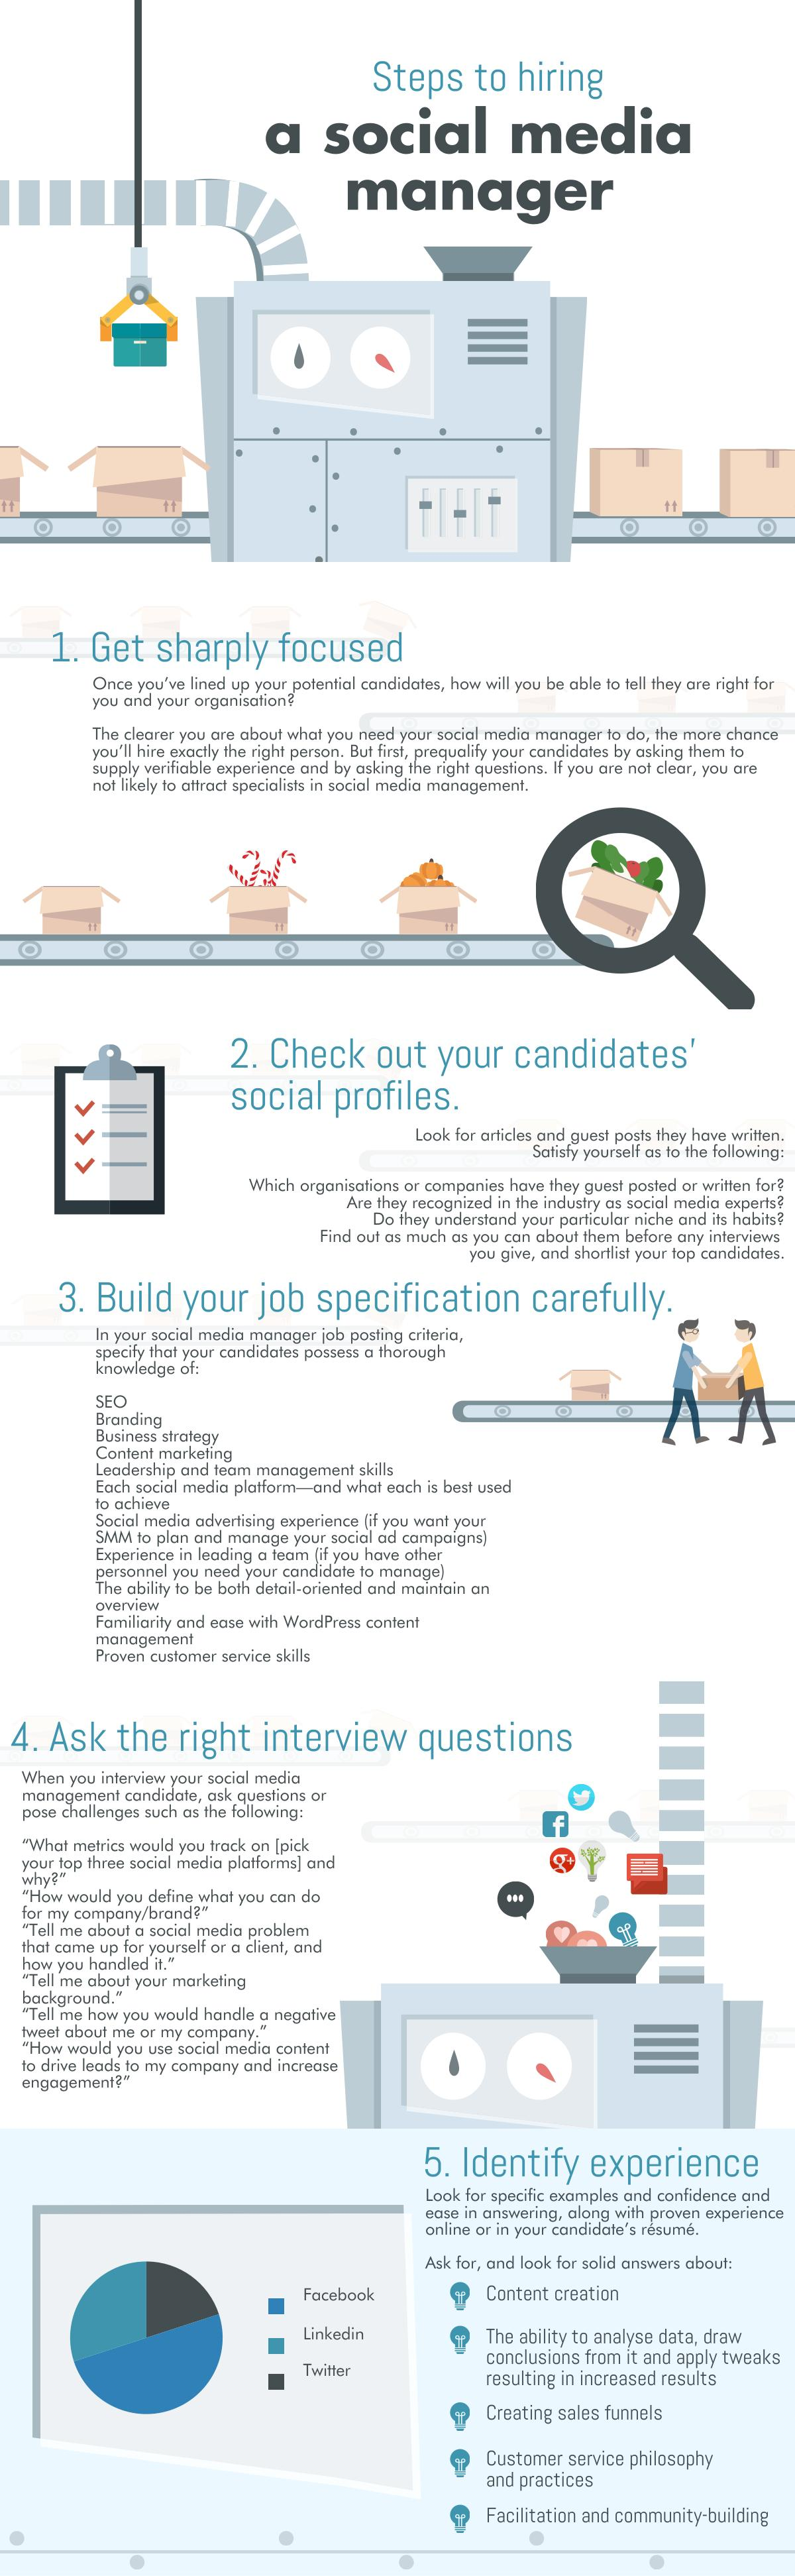 Hire a best-fit social media manager - Infographic by Lucy Lettersmith